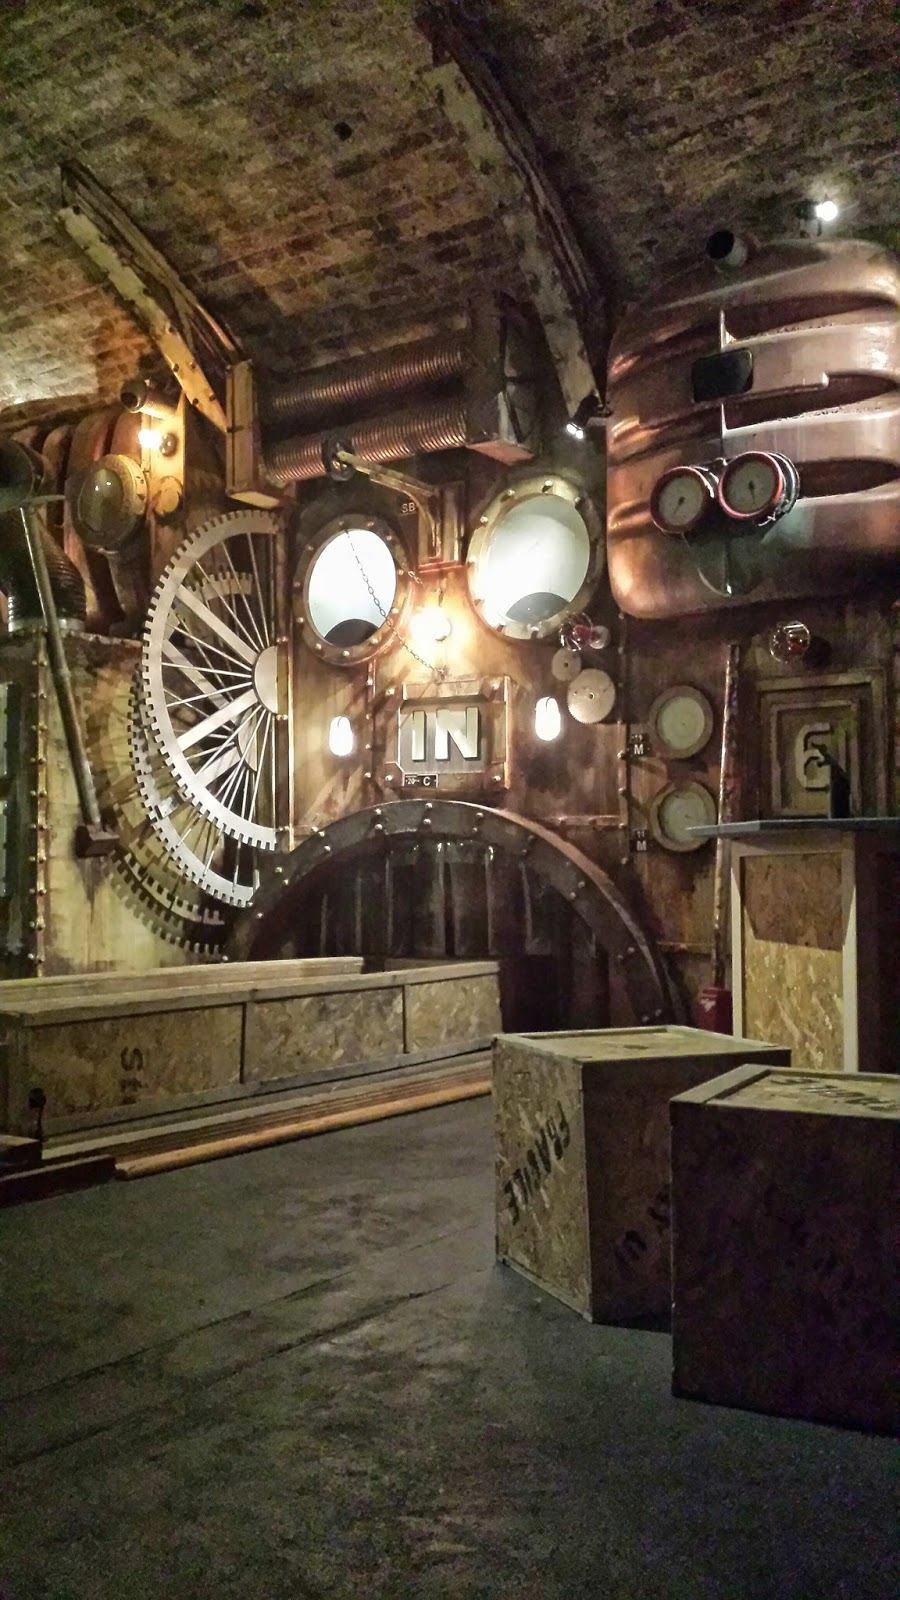 Immersive theatre and escape rooms Adventures of a London Kiwi